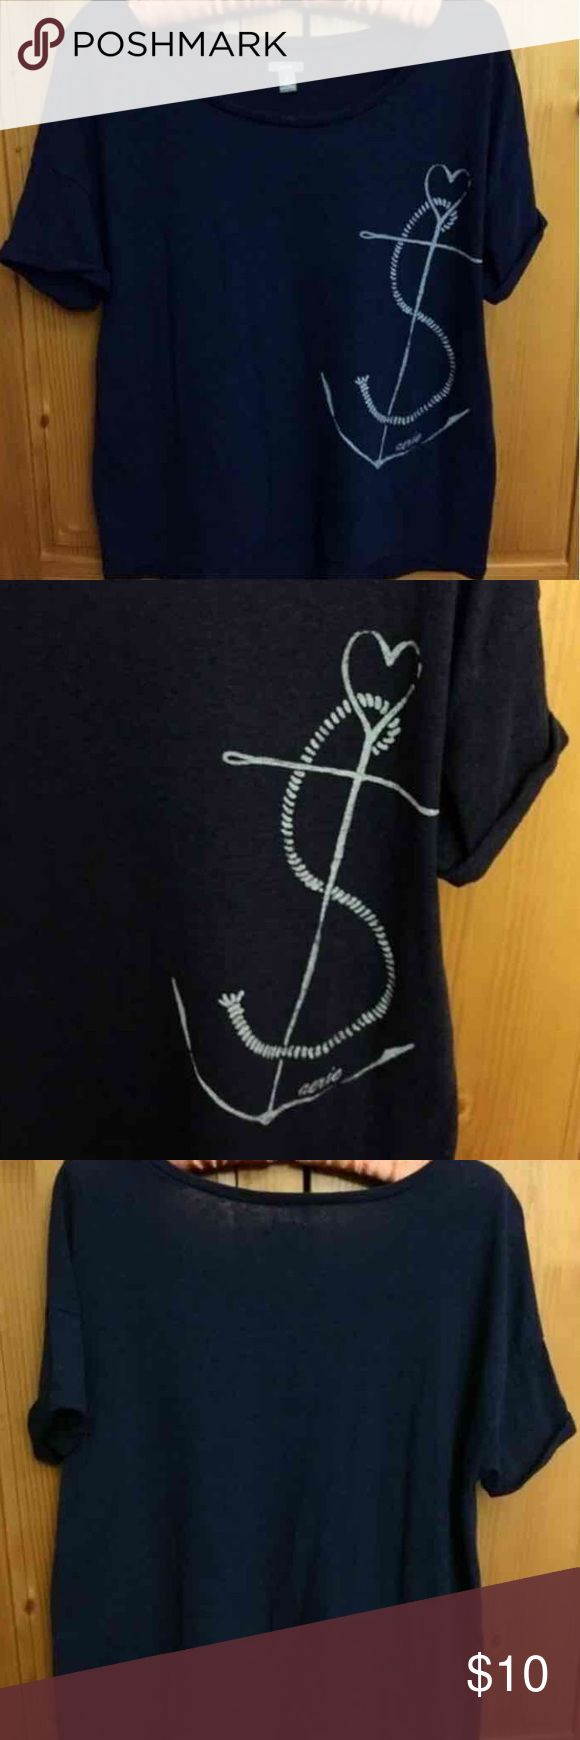 Aerie navy nautical flowy crop tee This navy blue tee has a cute white anchor, rope and heart graphic. It has short rolled sleeves, a loose flowy fit and is longer in the back. It is slightly sheer. Cotton/poly blend. Size small. Was worn once or twice and is in like new condition.  Purchased online from Aerie / American Eagle.  Very cute nautical print graphic summer tee. aerie Tops Tees - Short Sleeve